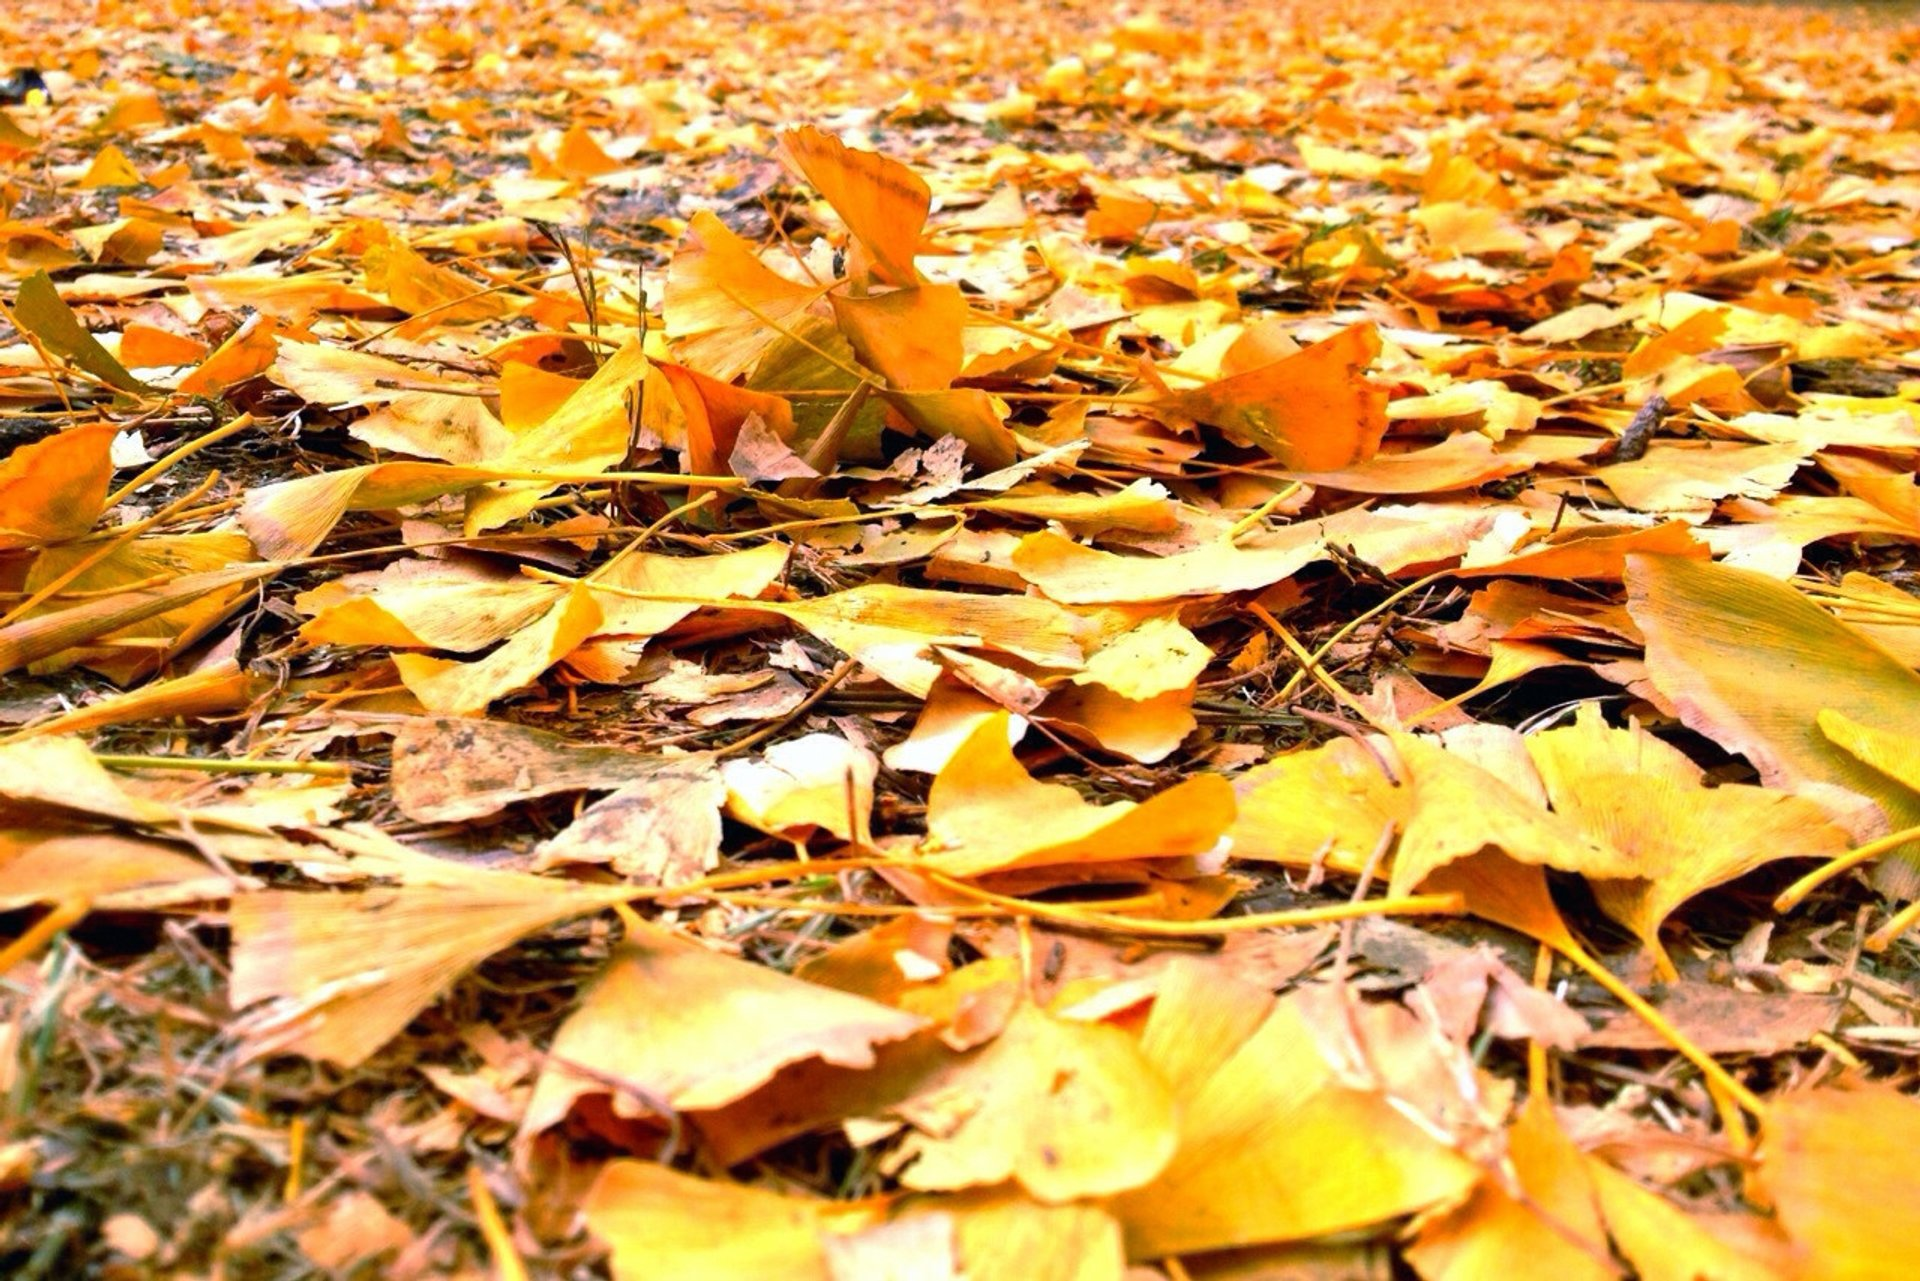 Fallen leaves of Diaoyutai Boulevard 2020